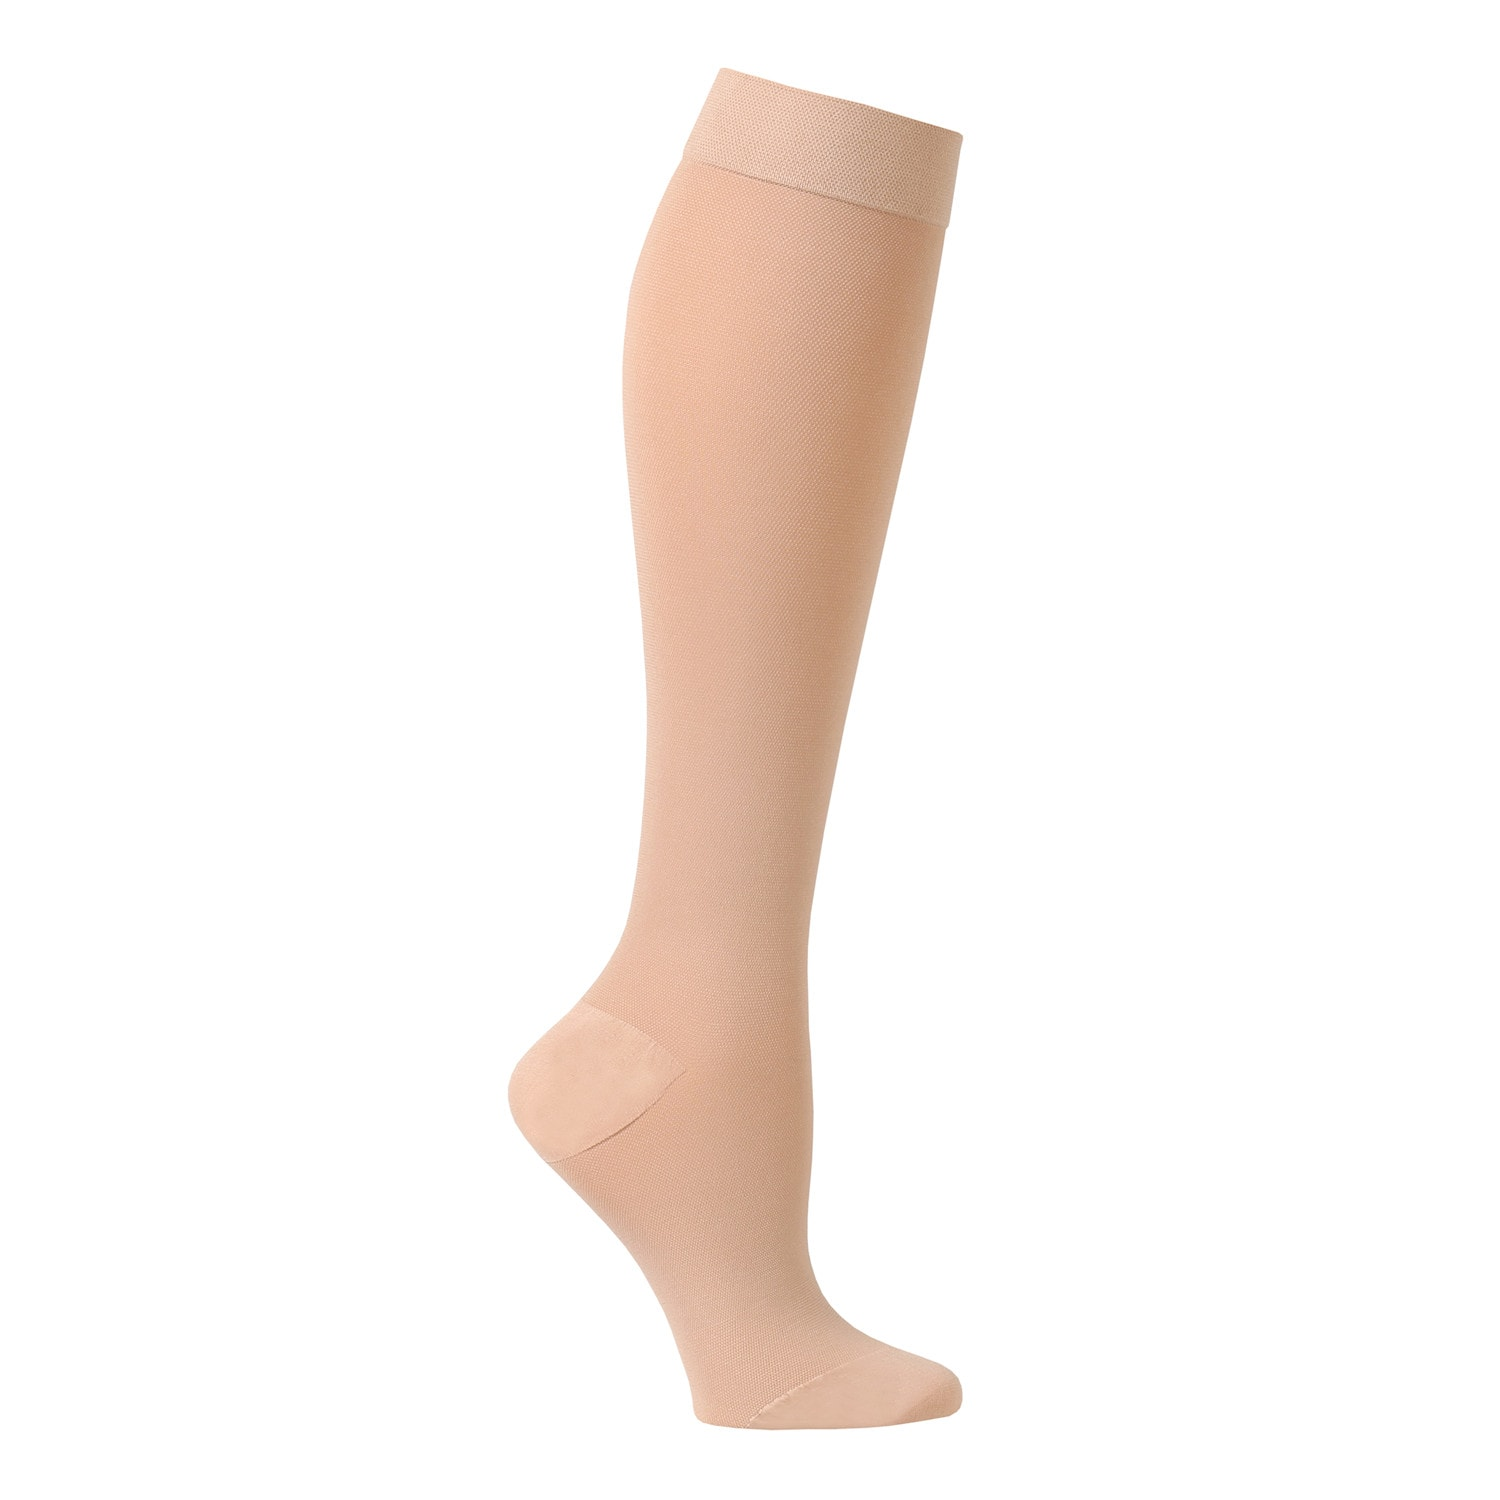 36374028a Support Plus Women s Firm Compression Hose -Opaque Knee High Wide Calf  Stockings